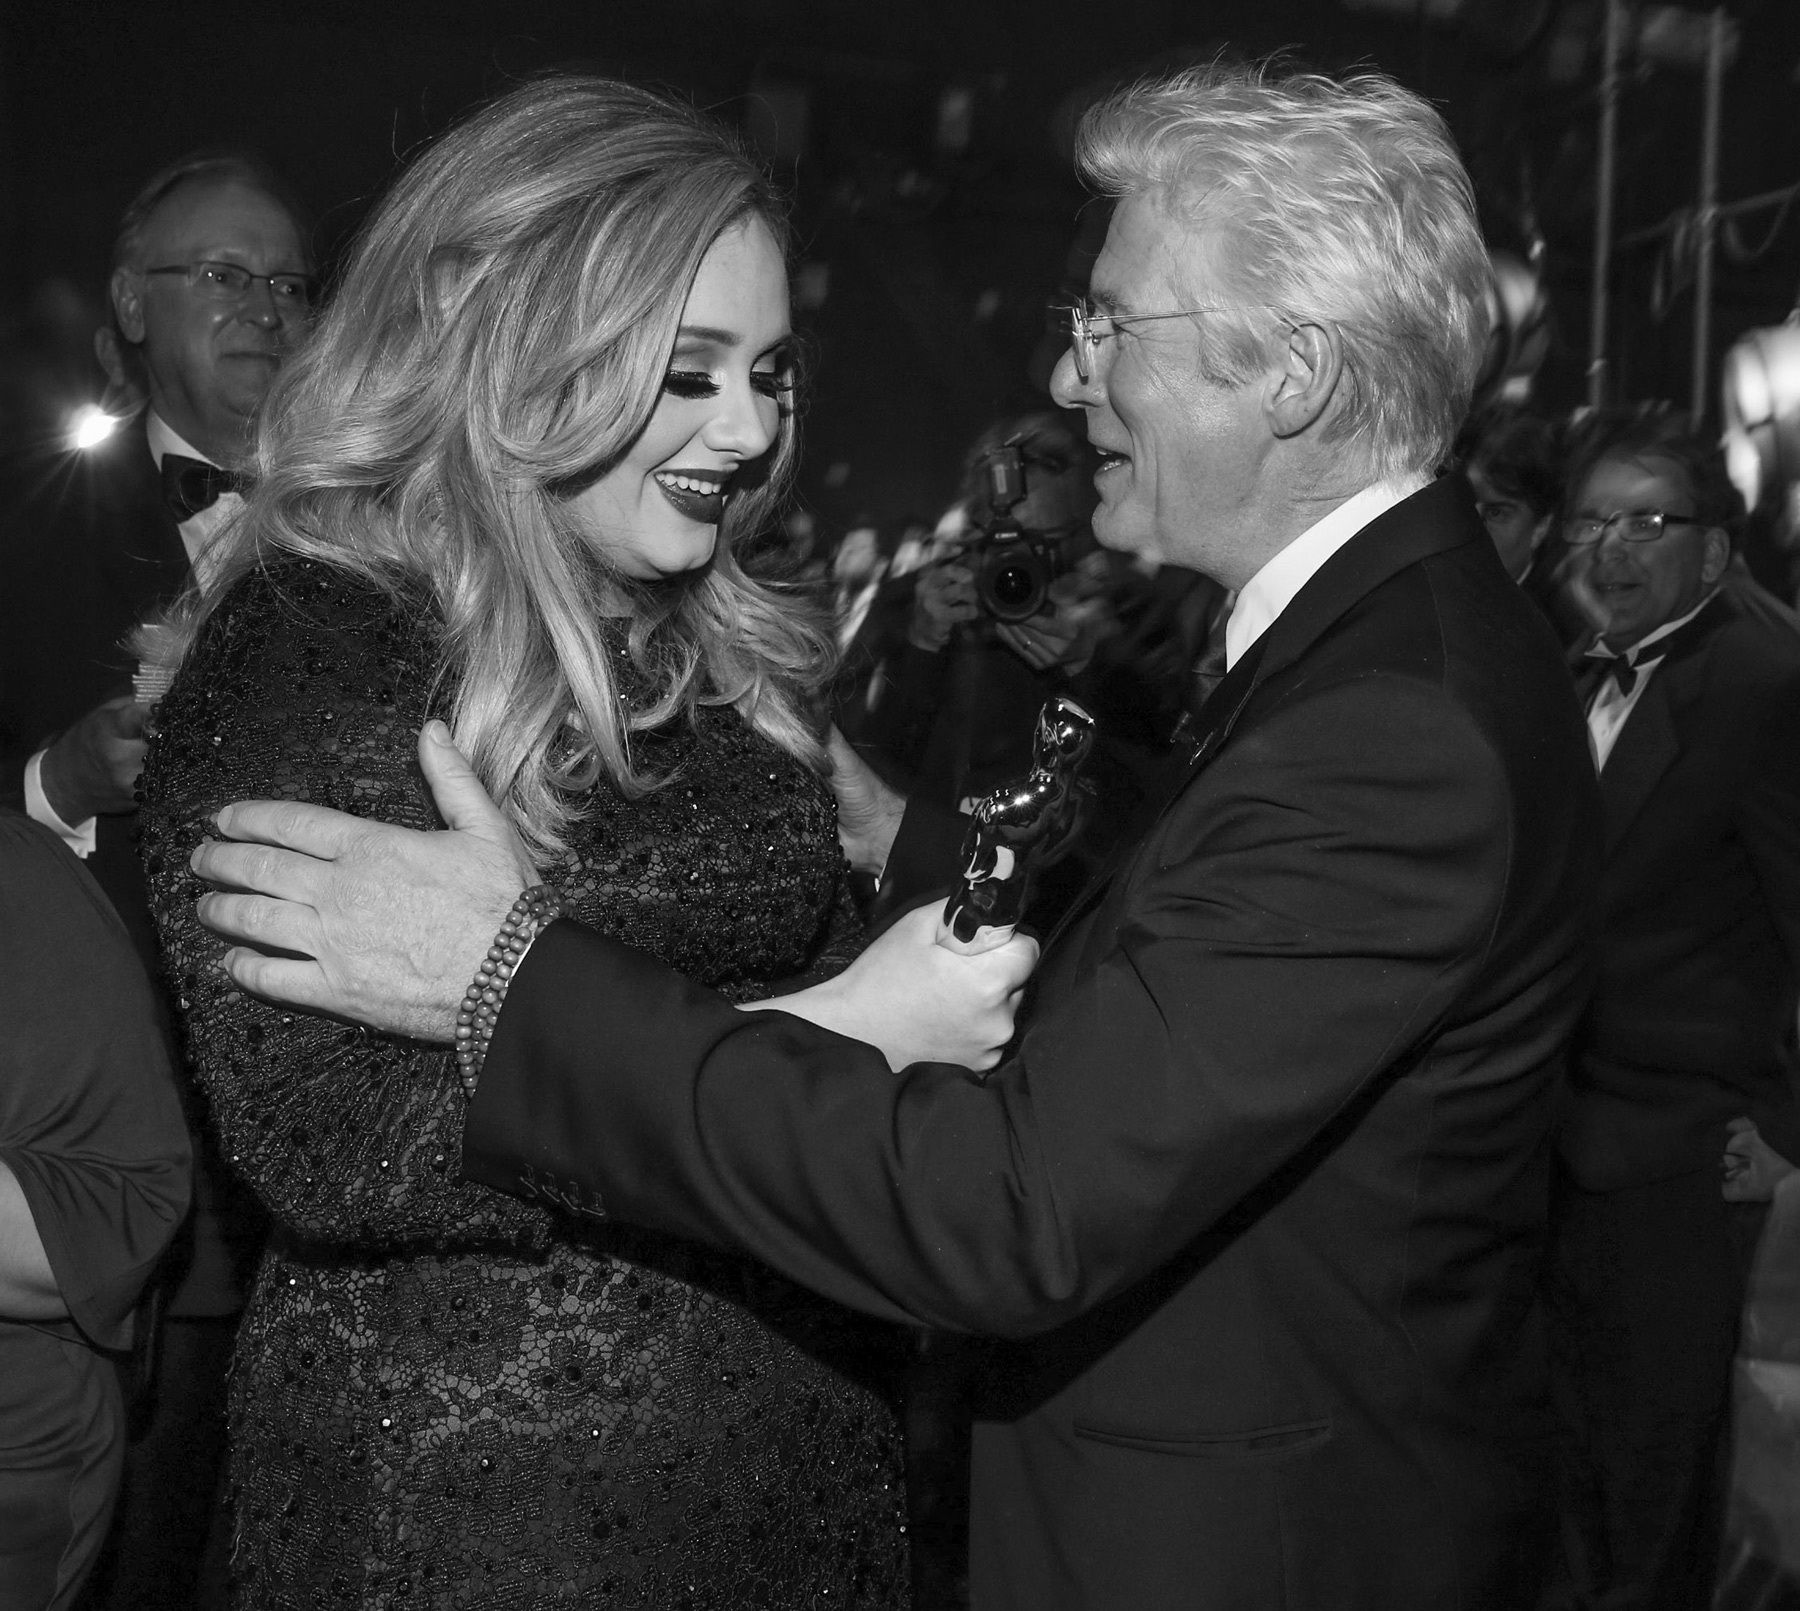 Adele and Richard Gere